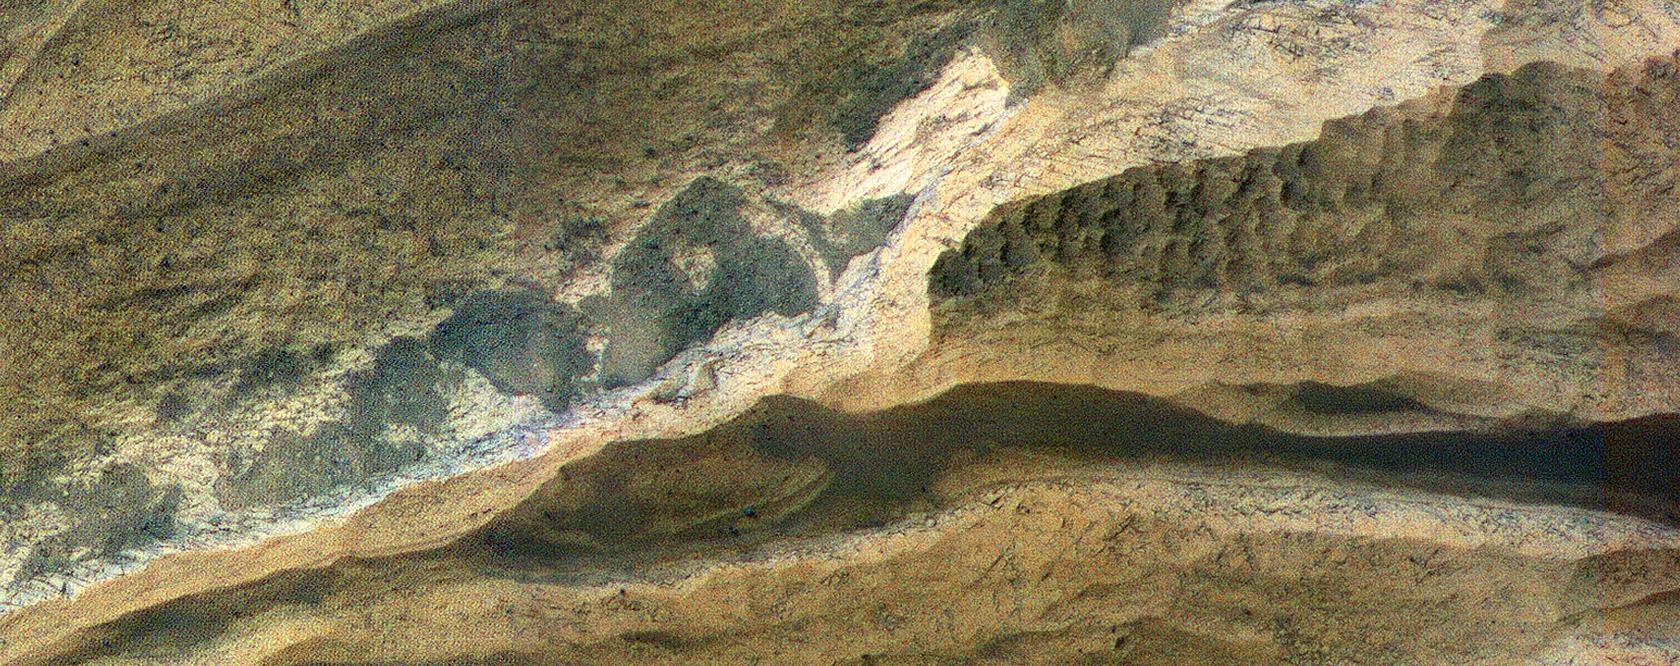 Sedimentary Rock Layers in Terby Crater